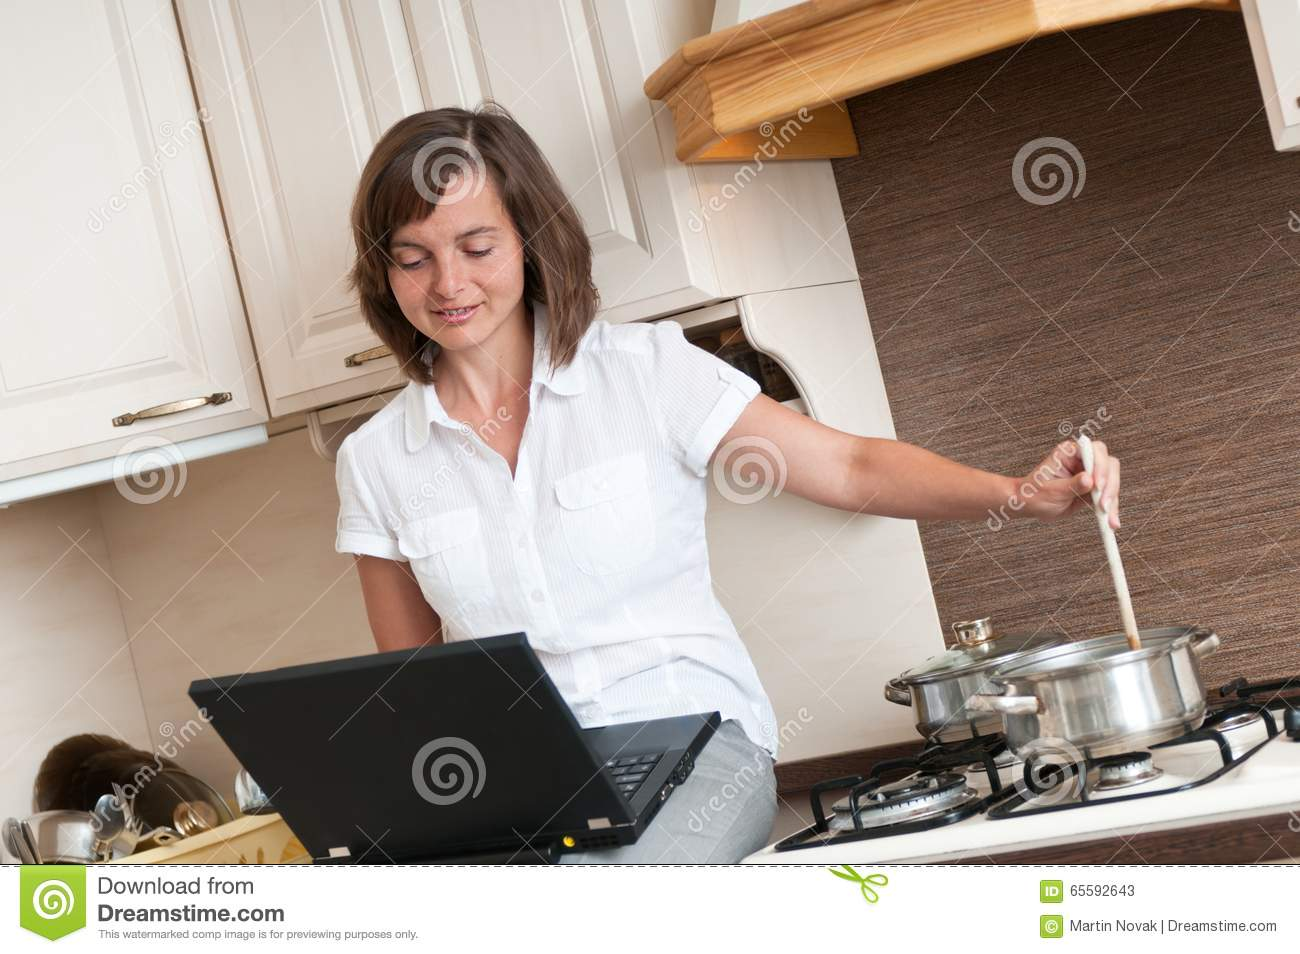 Cooking with computer